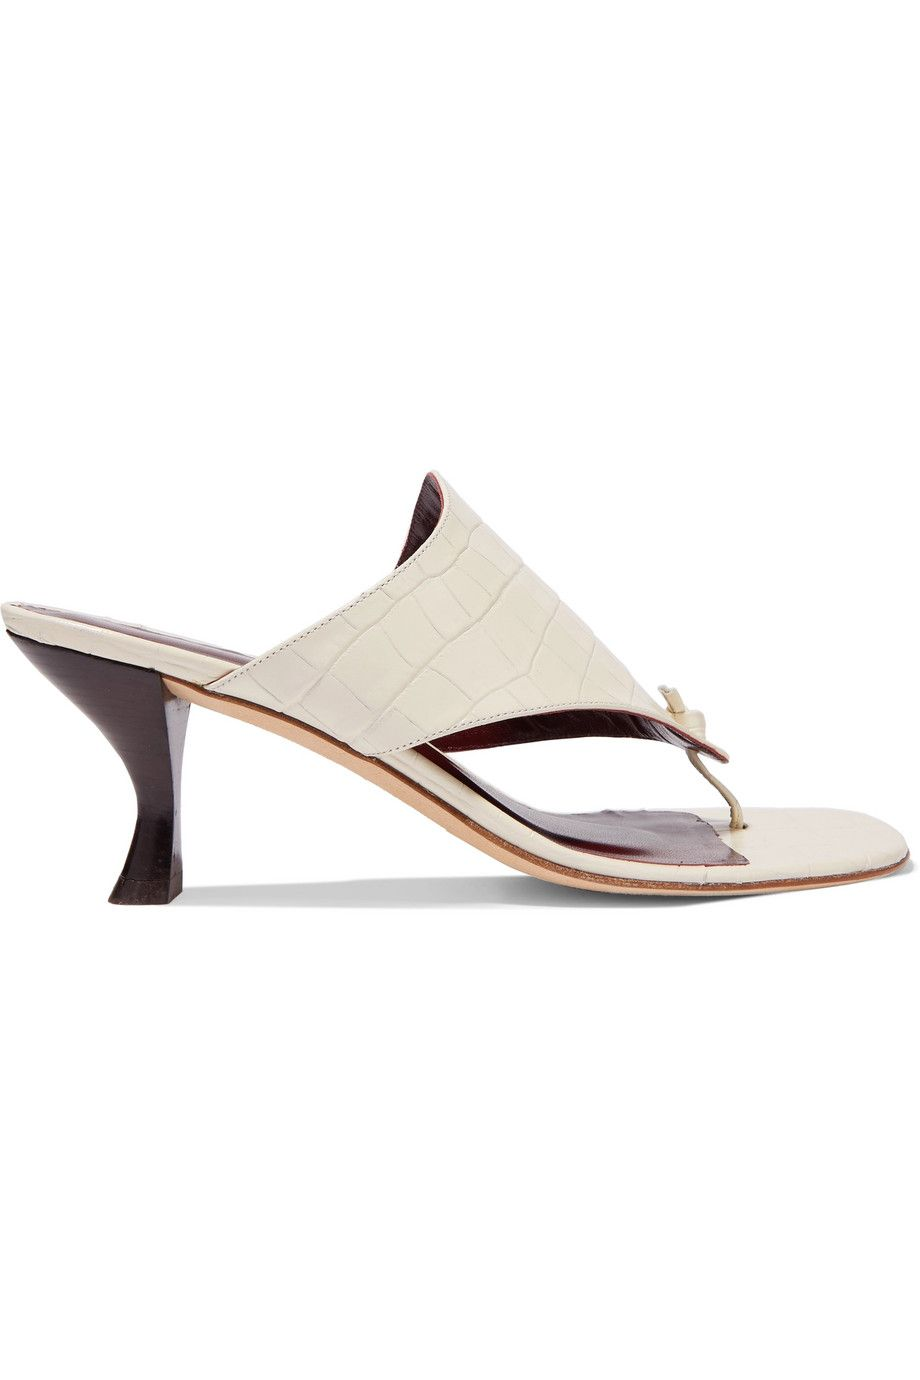 Keith croc-effect leather mules STAUD net-a-porter.com $295.00 SHOP NOW Behold: The elevated version of your most comfortable flip-flops.